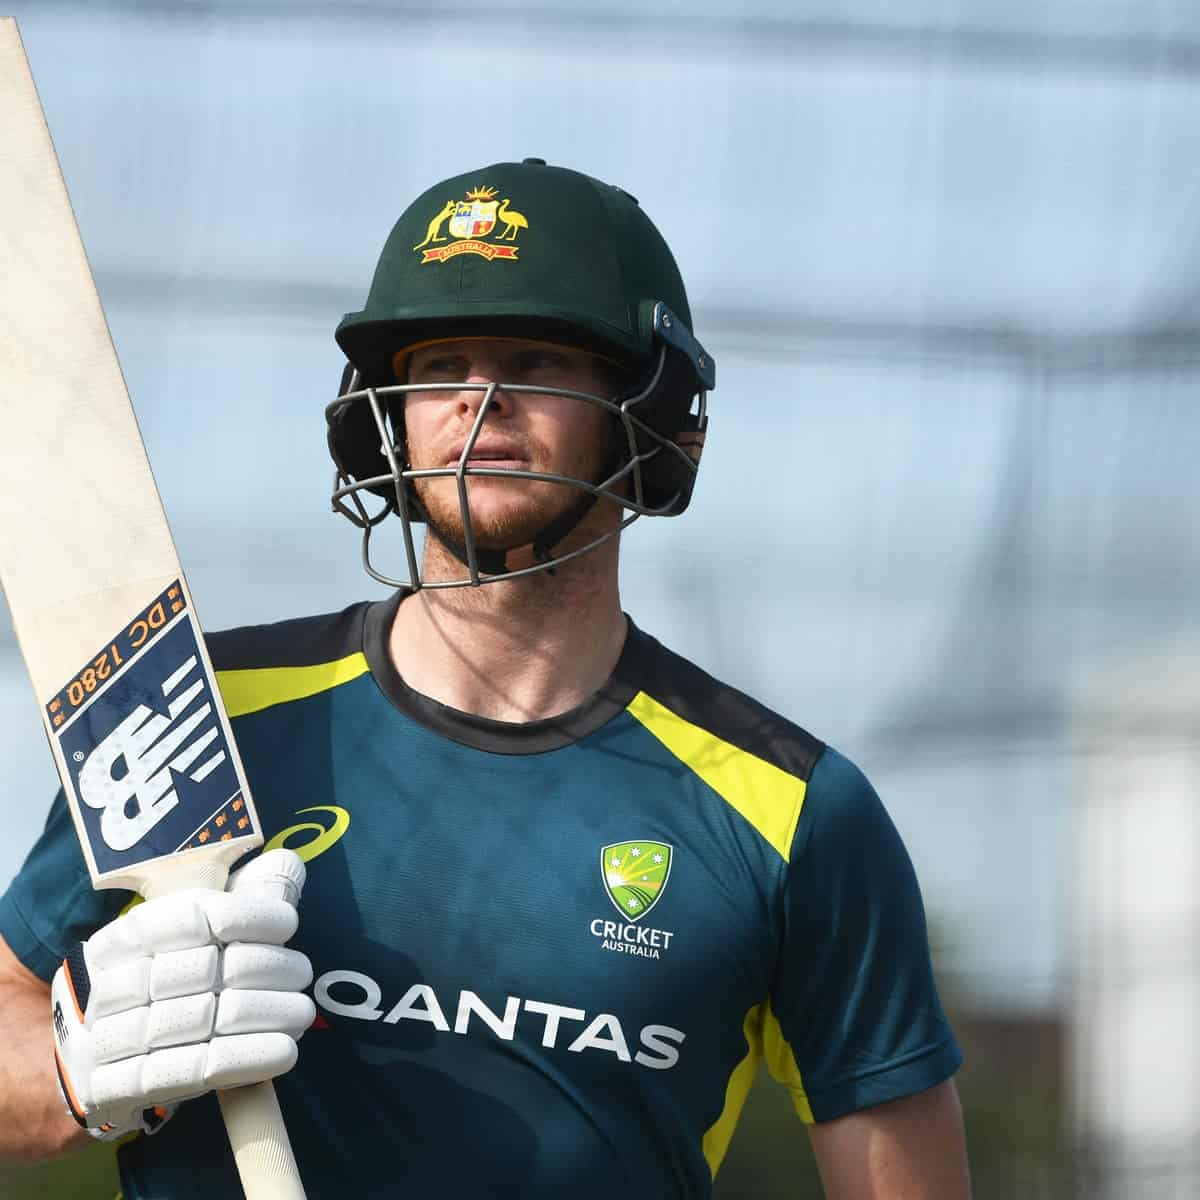 IND vs AUS: Steve Smith 'Finds His Hands' After Disappointing Performance in IPL